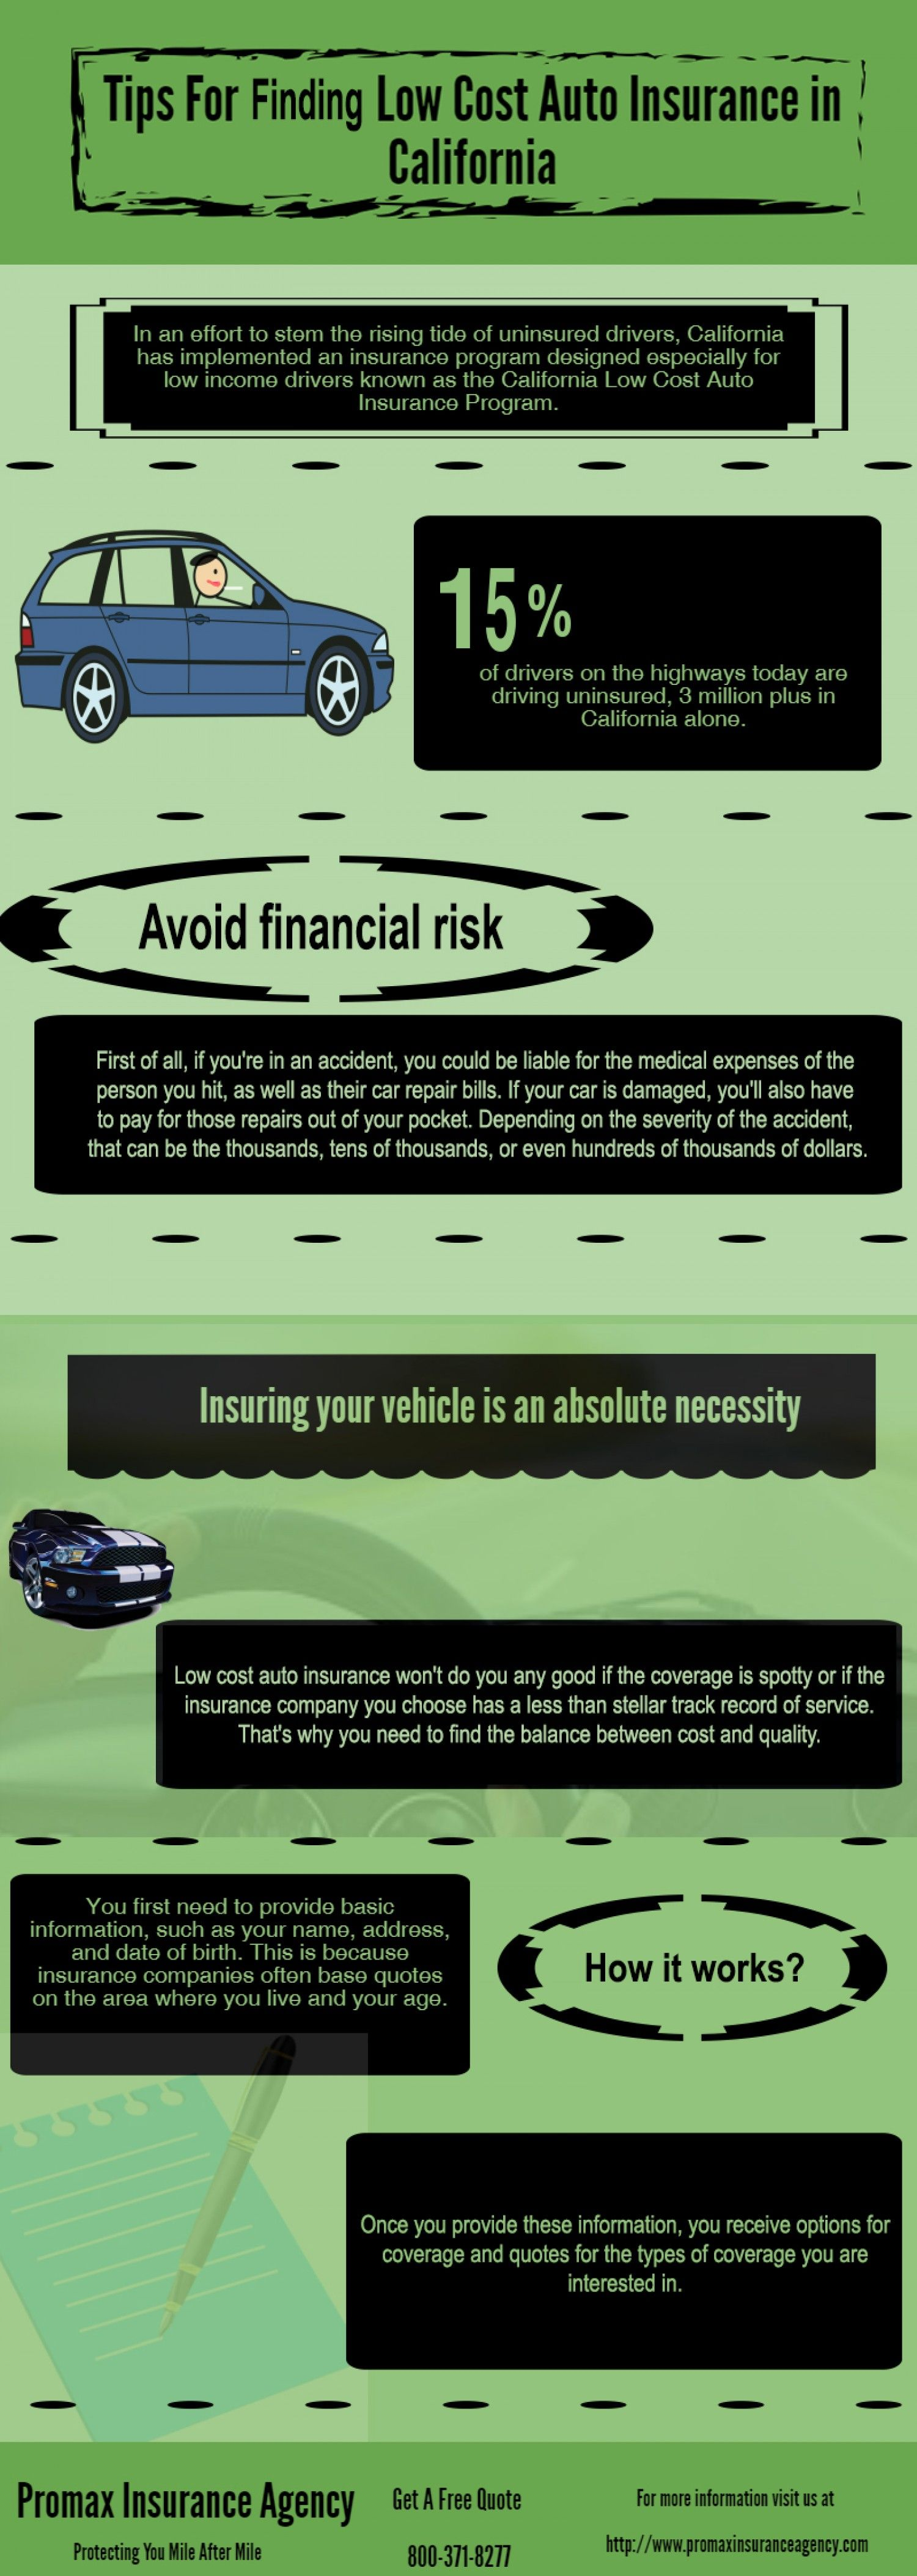 The General Car Insurance Quotes Low Cost Auto Insurance In California Infographic .